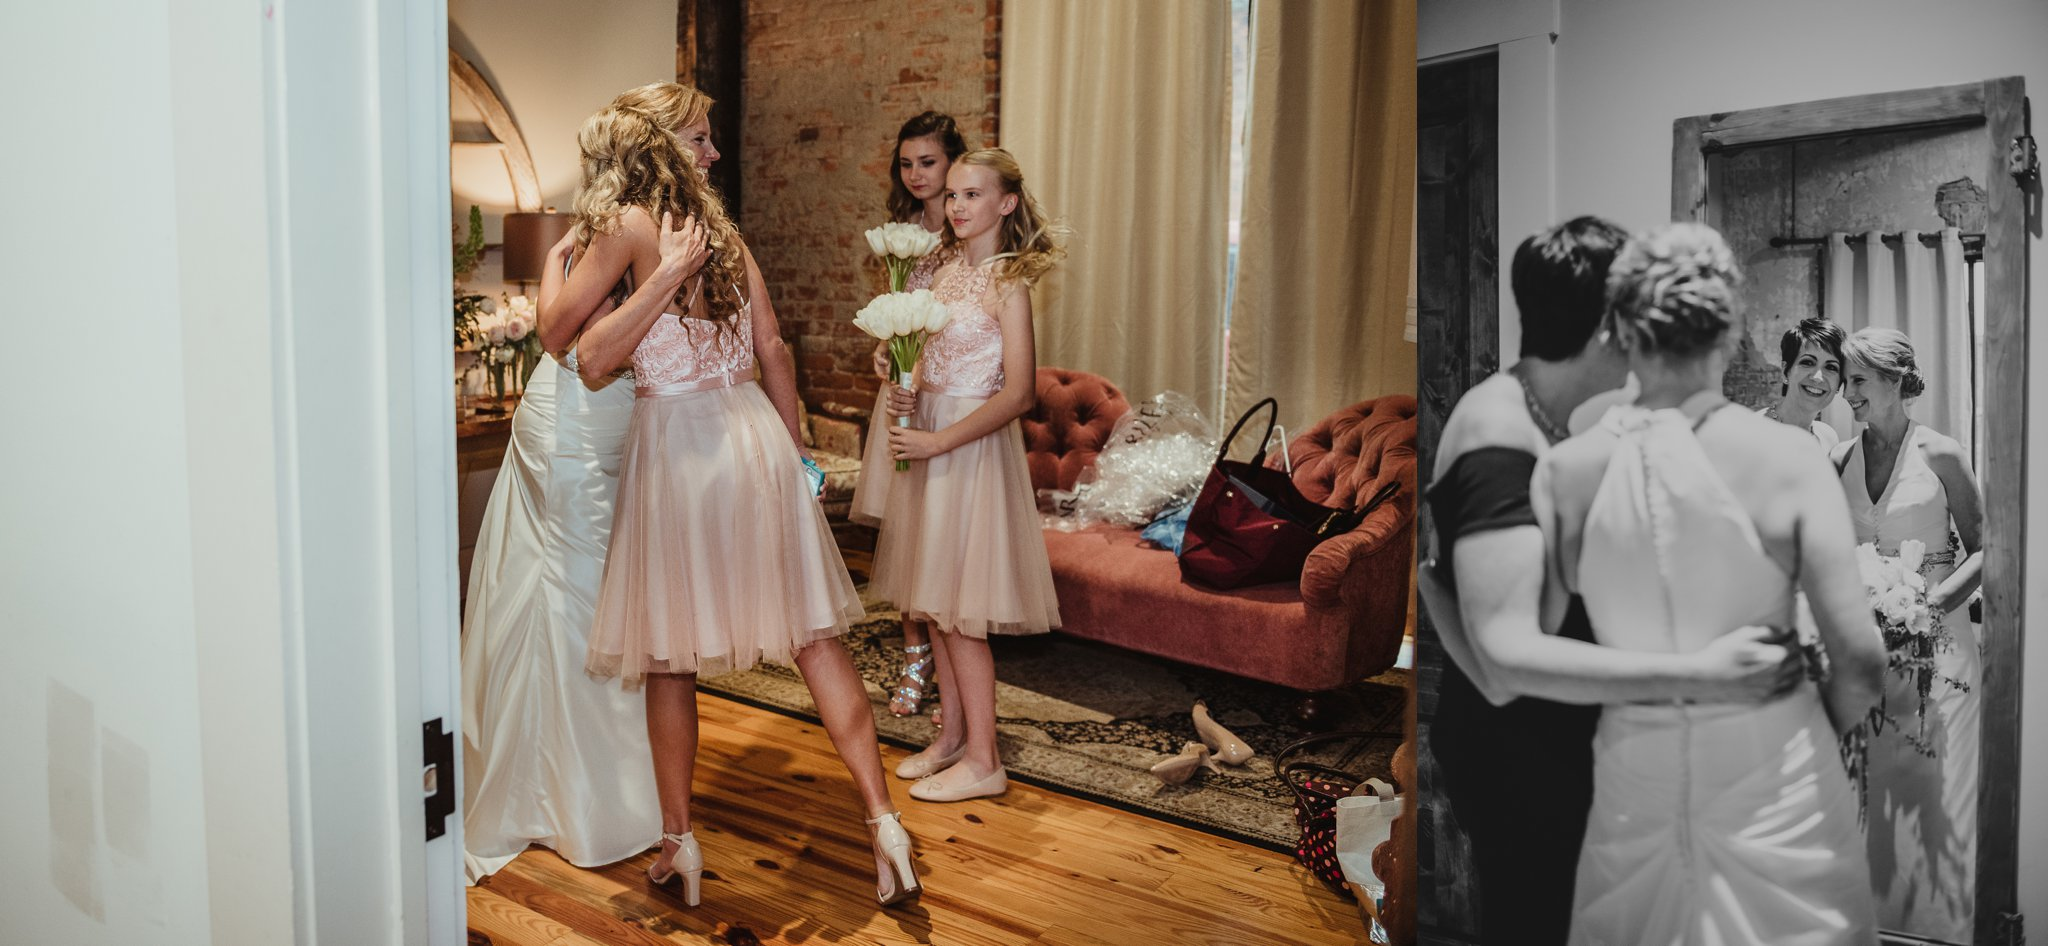 The bride got ready with her family before her wedding ceremony at Cross and Main, images taken by Rose Trail Images.